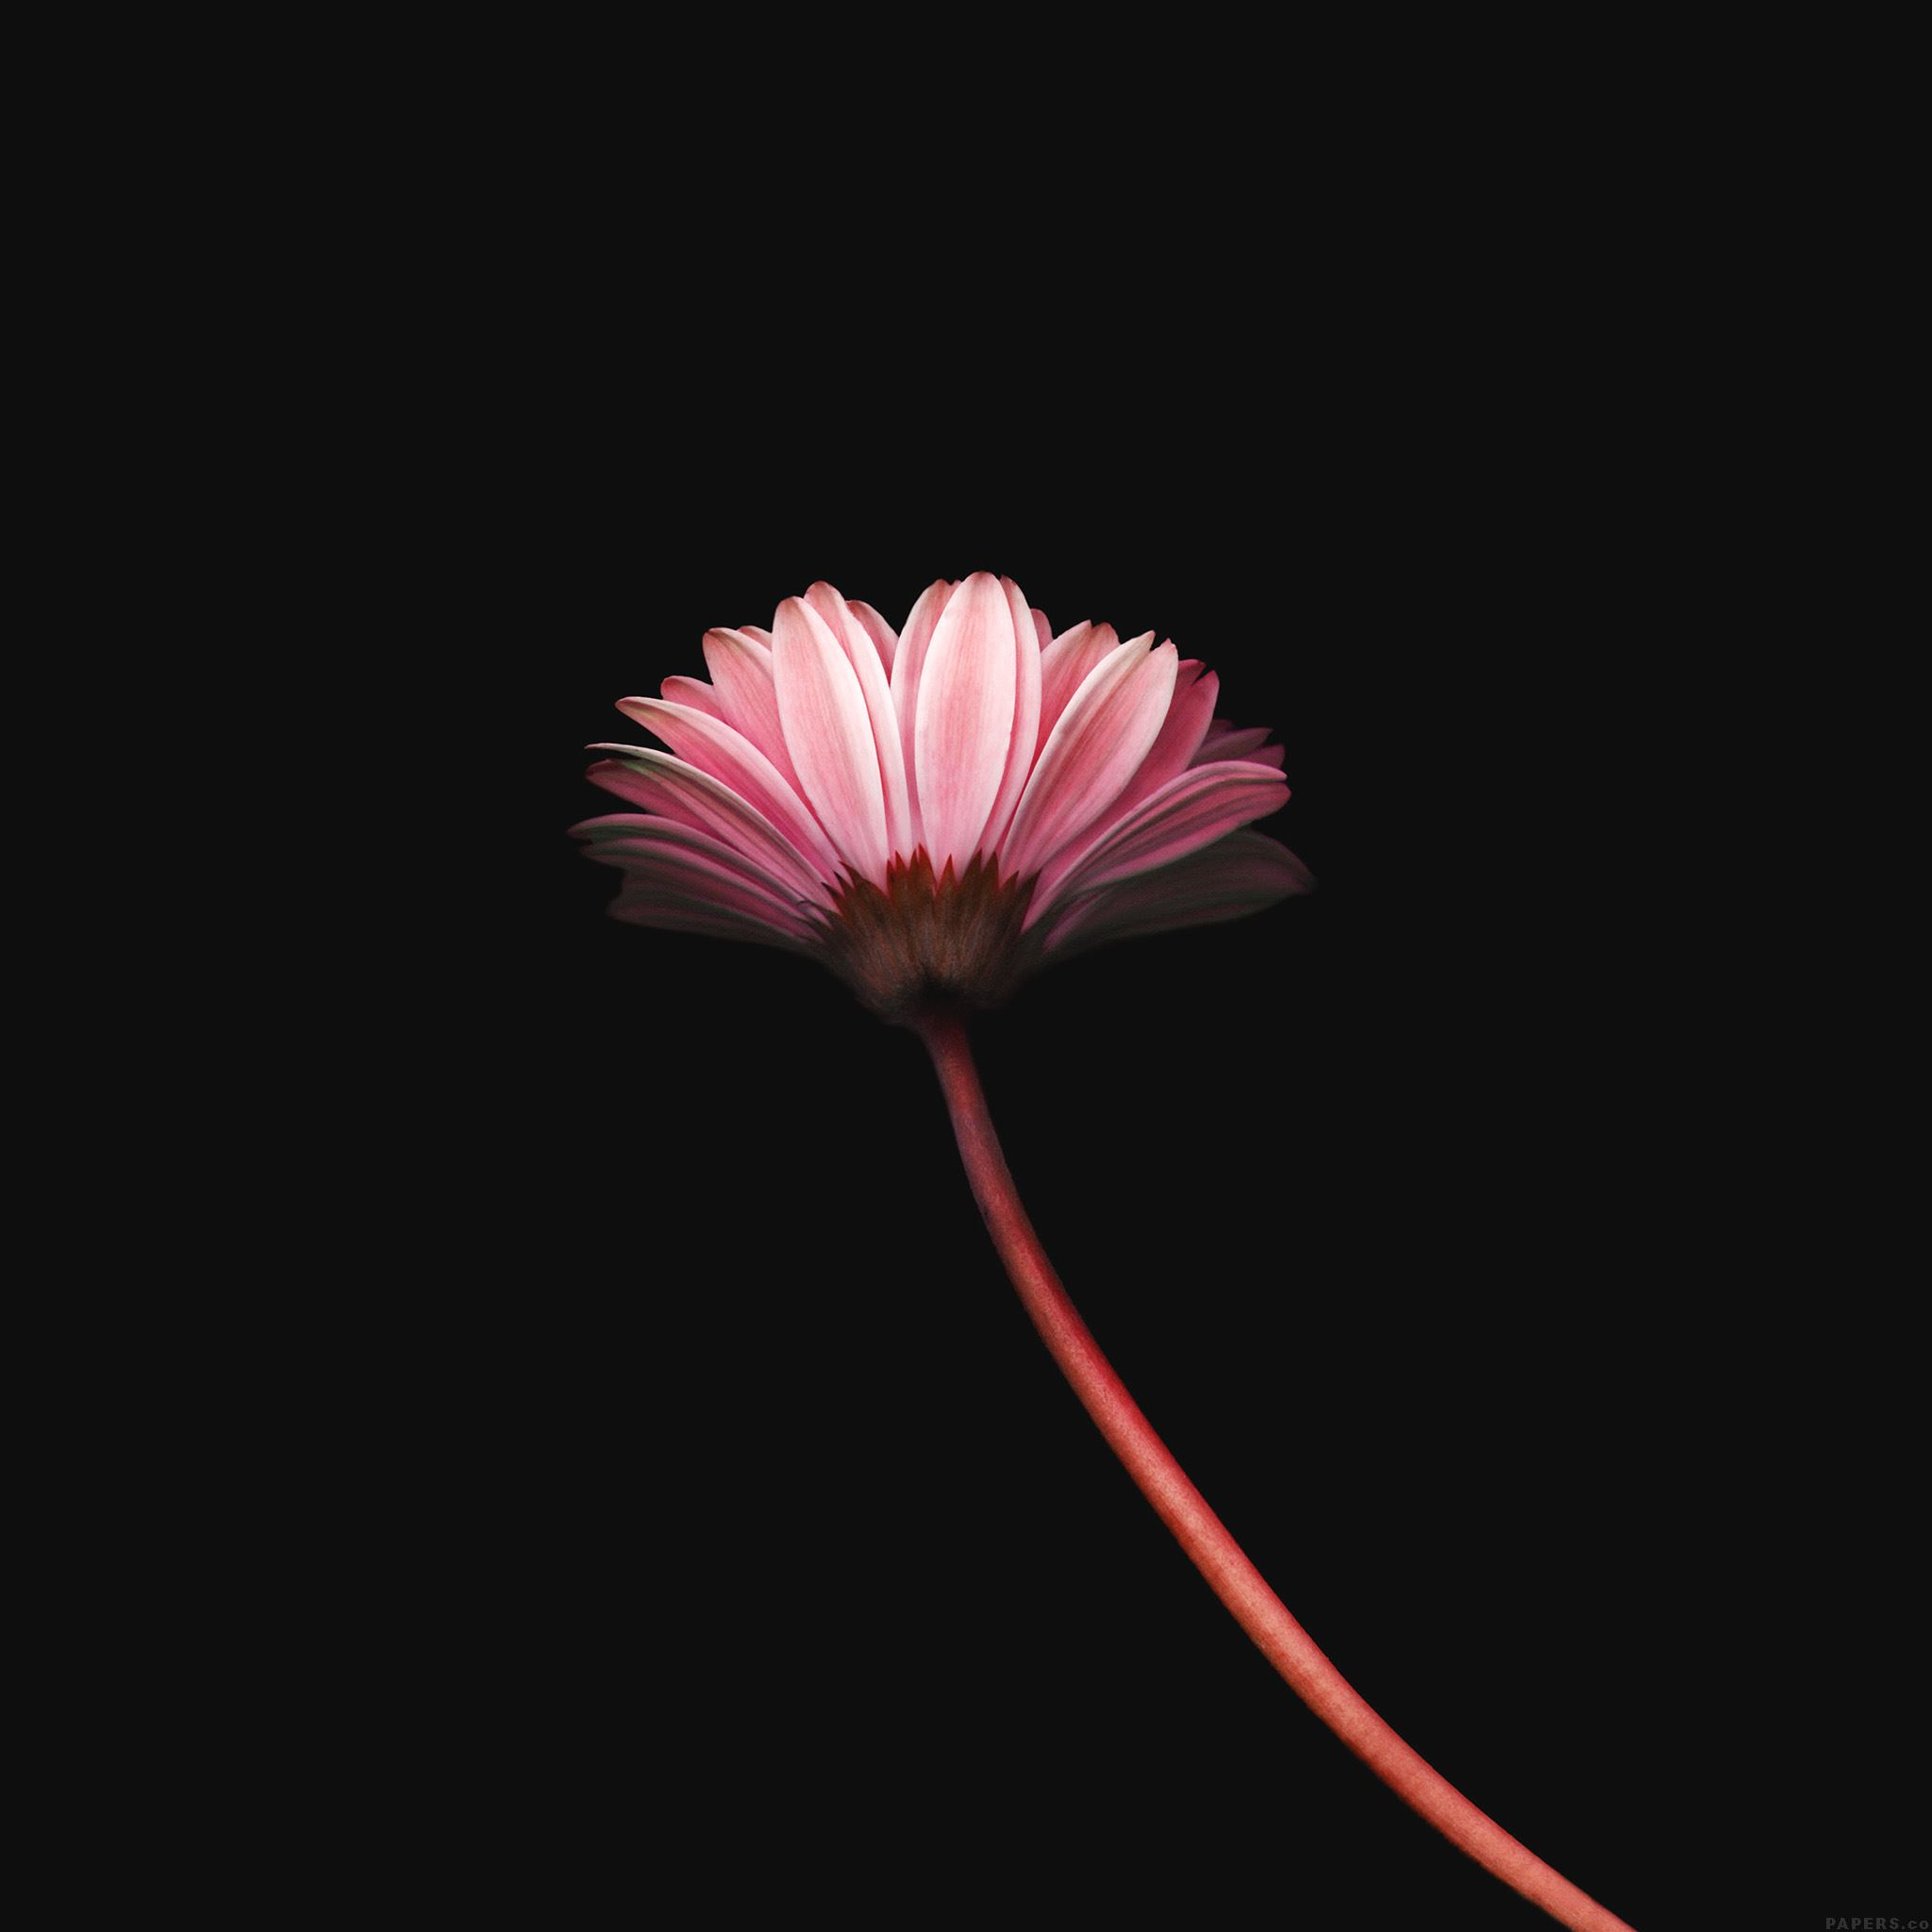 Lonely Flower Dark Red Simple Minimal Nature iPad Air wallpaper